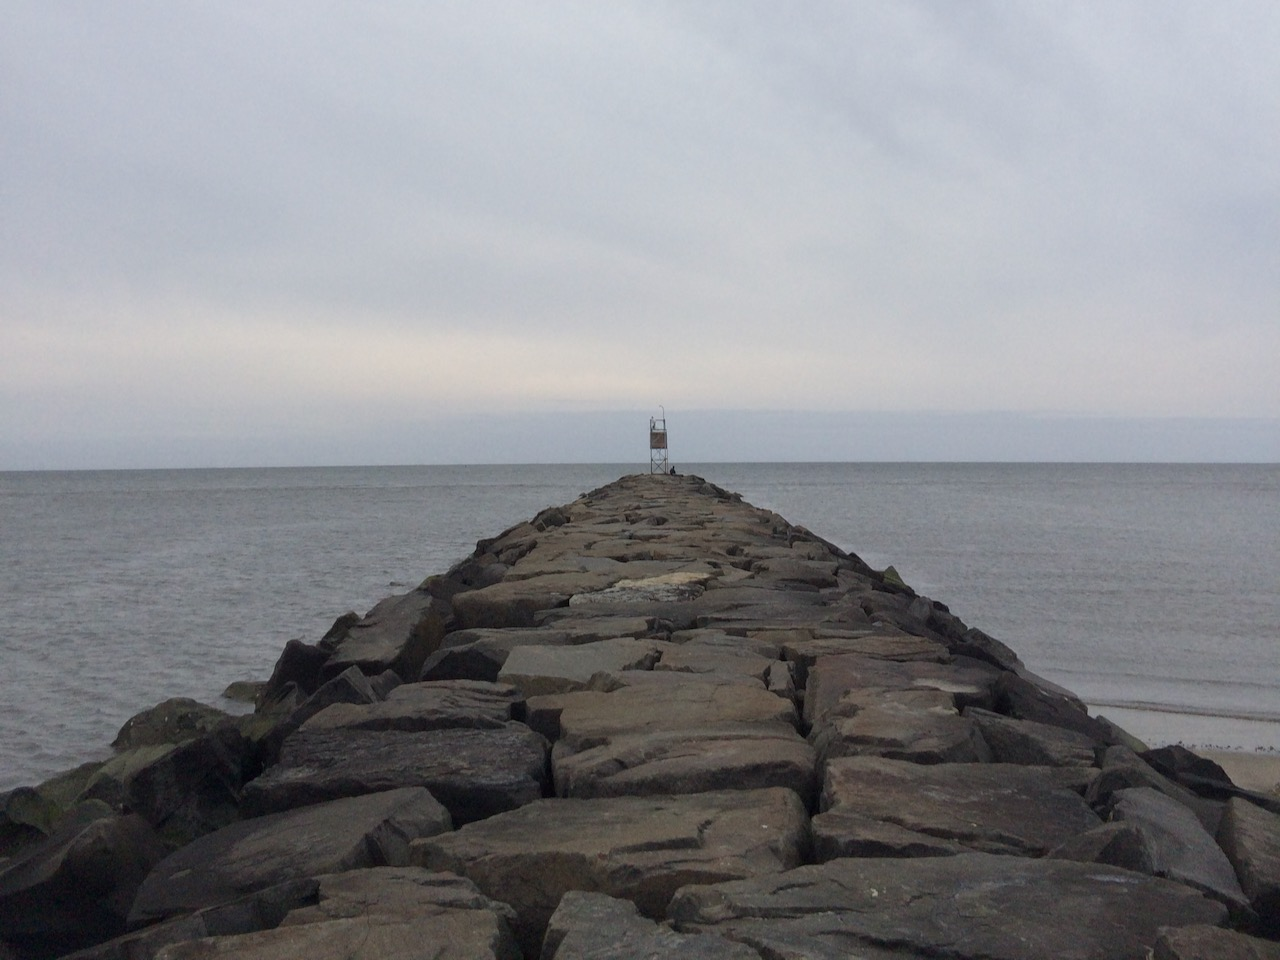 Jetty protruding out into Delaware Bay.